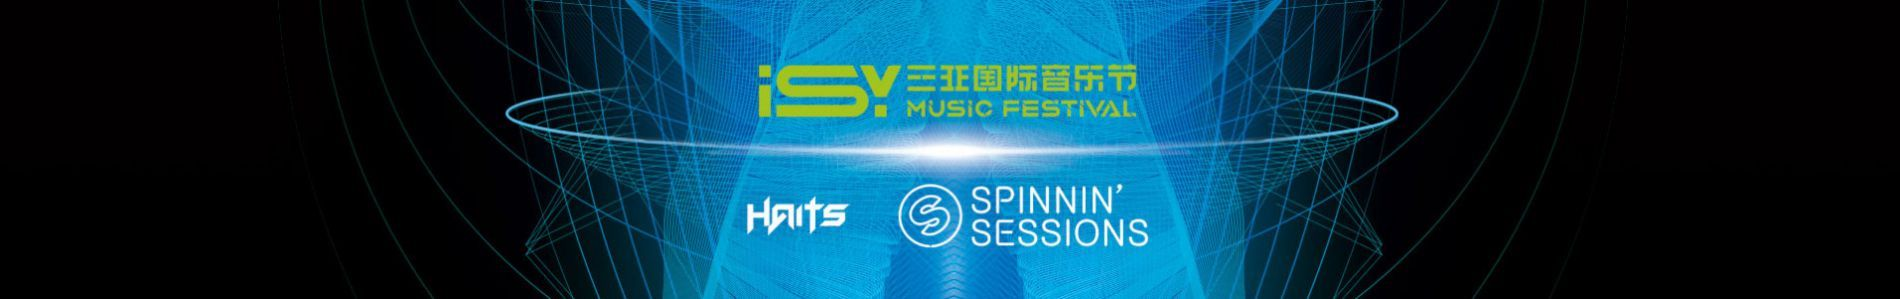 Spinnin' Sessions Spinnin' Sessions | ISY Music Festival